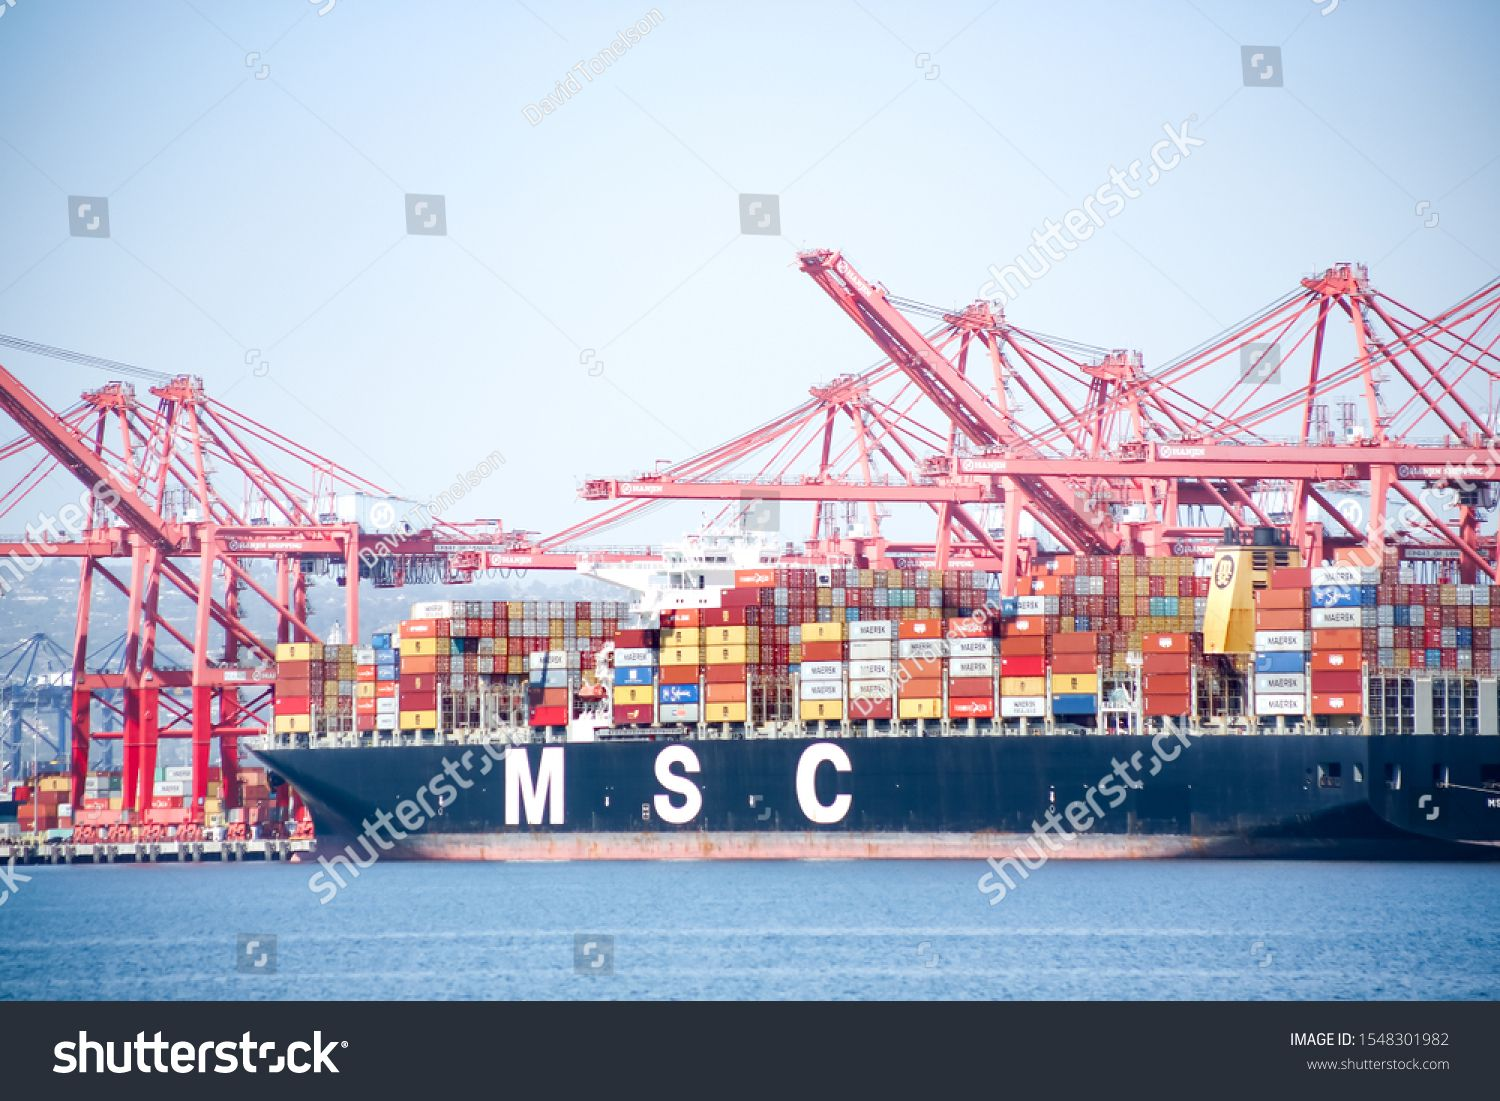 Biggest Container Ship In The World 2019